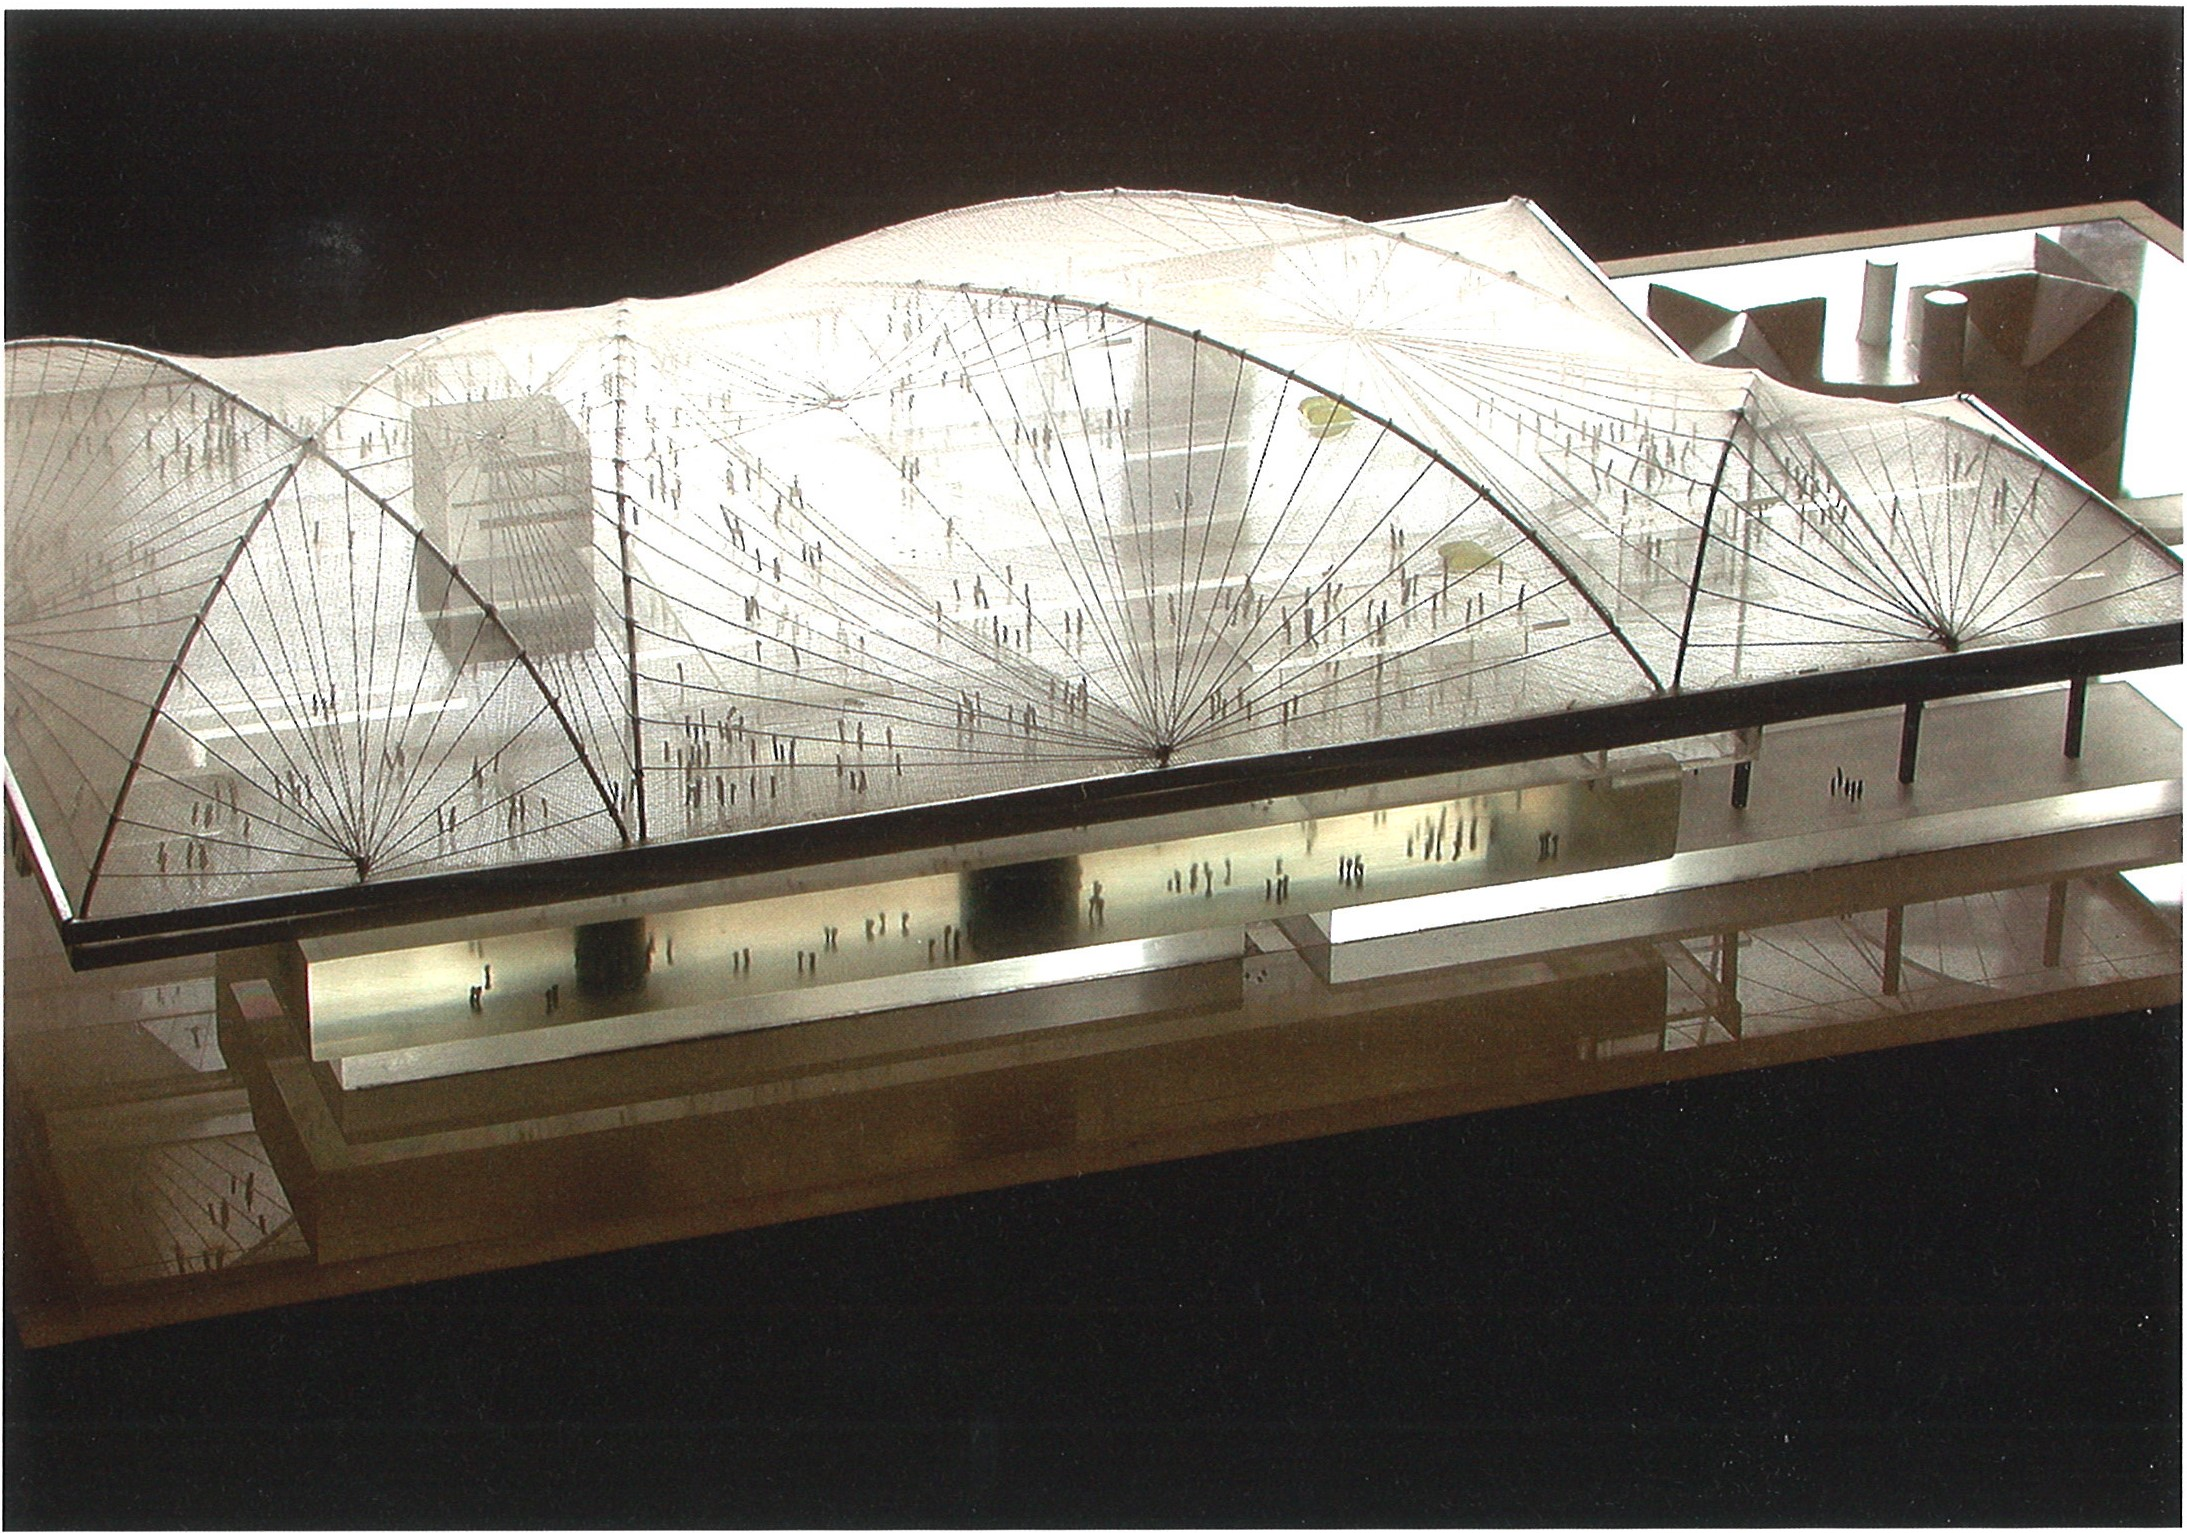 Competition model, LACMA, 2001